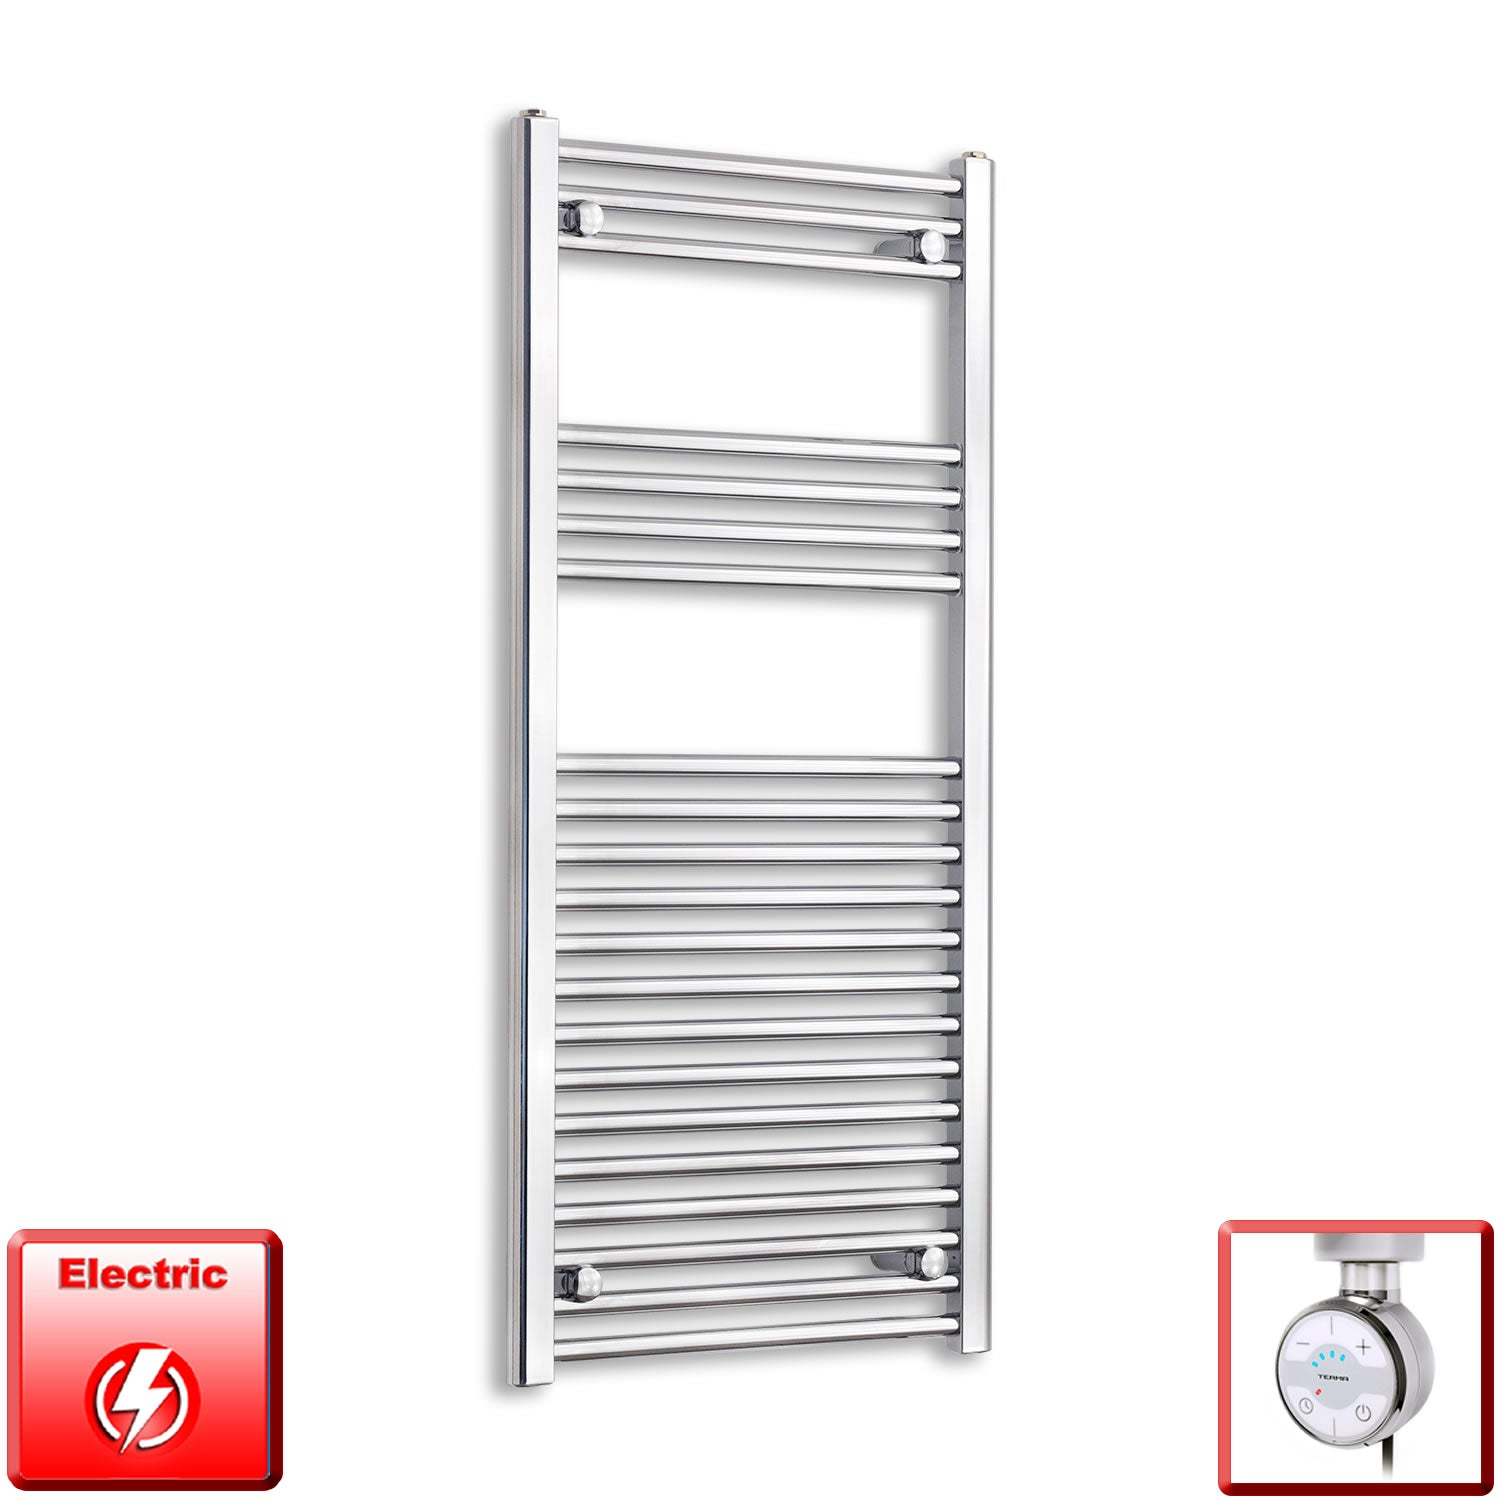 500mm Wide 1118mm High Pre-Filled Electric Heated Towel Rail Radiator Chrome HTR,MOA Thermostatic